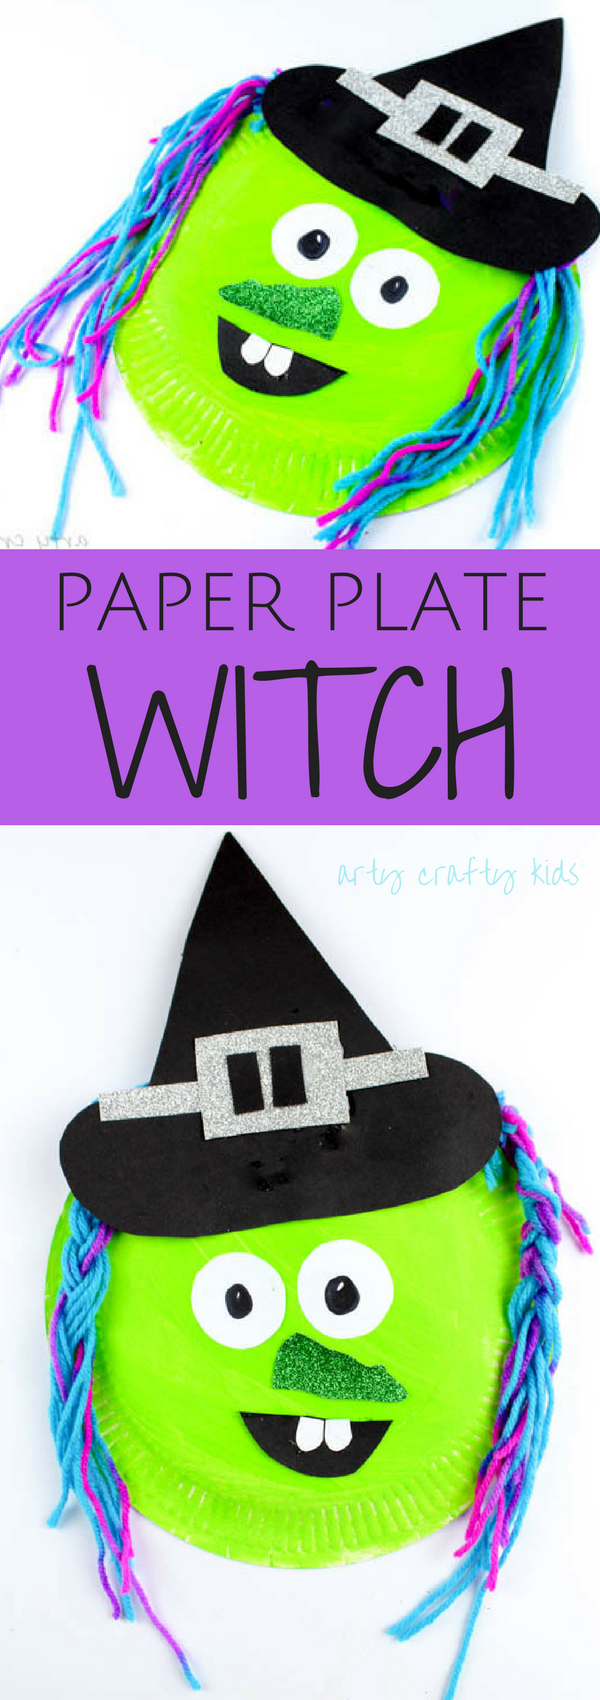 paper plate witch crafty kids witches and craft